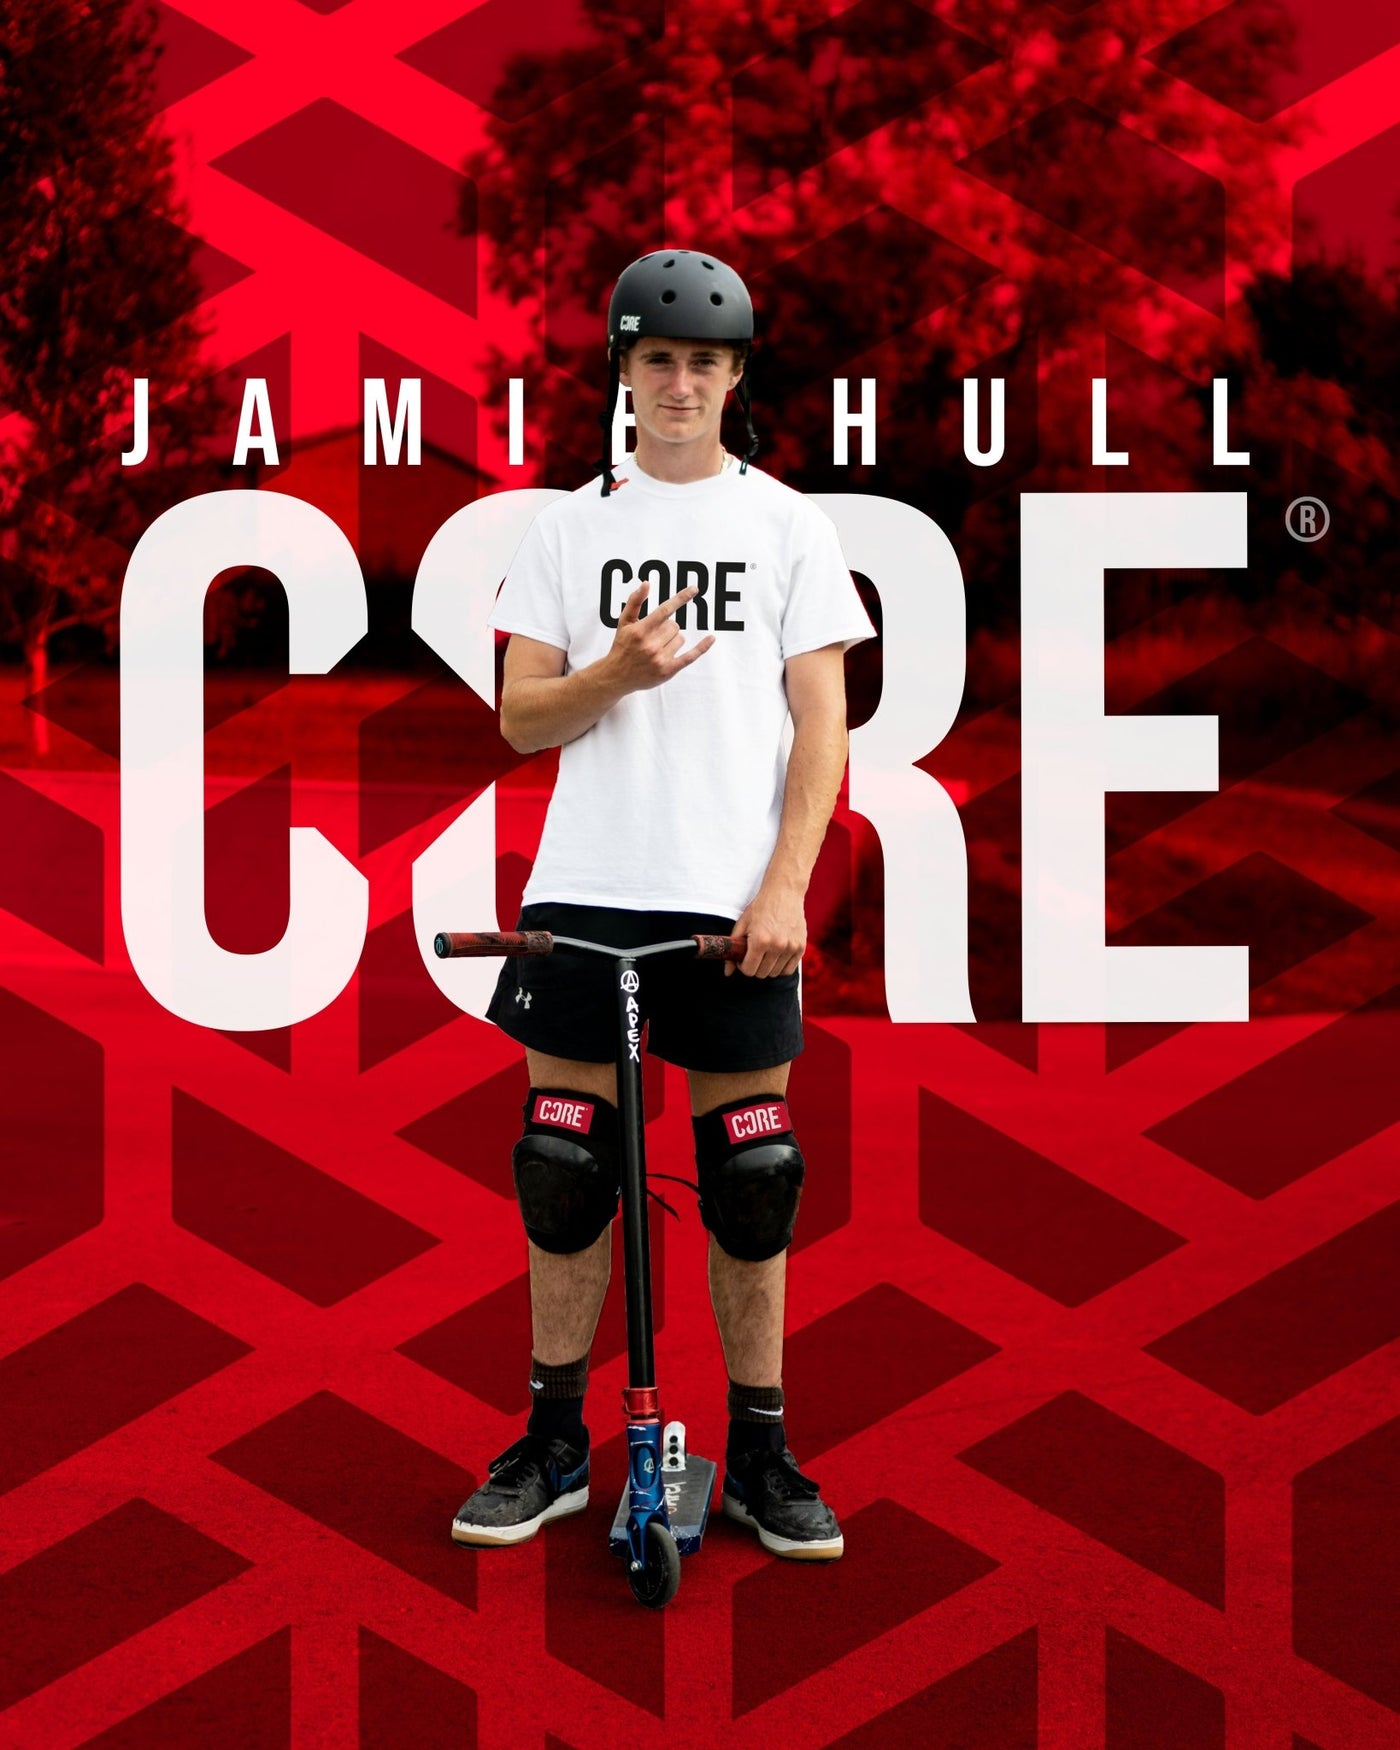 NEW Pro Rider - Jamie Hull signs for CORE Protection | CORE Protection